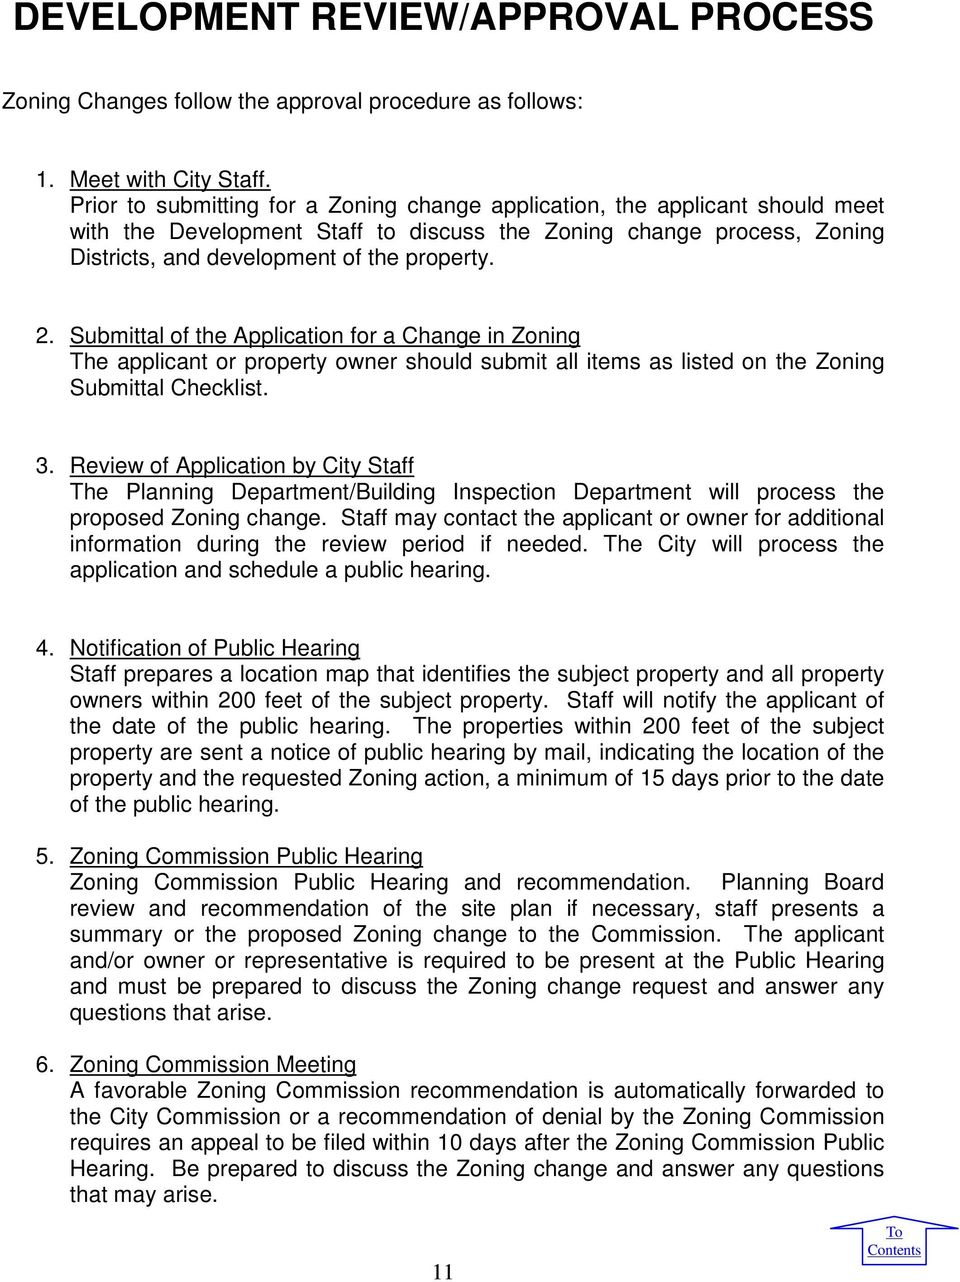 Submittal of the Application for a Change in Zoning The applicant or property owner should submit all items as listed on the Zoning Submittal Checklist. 3.